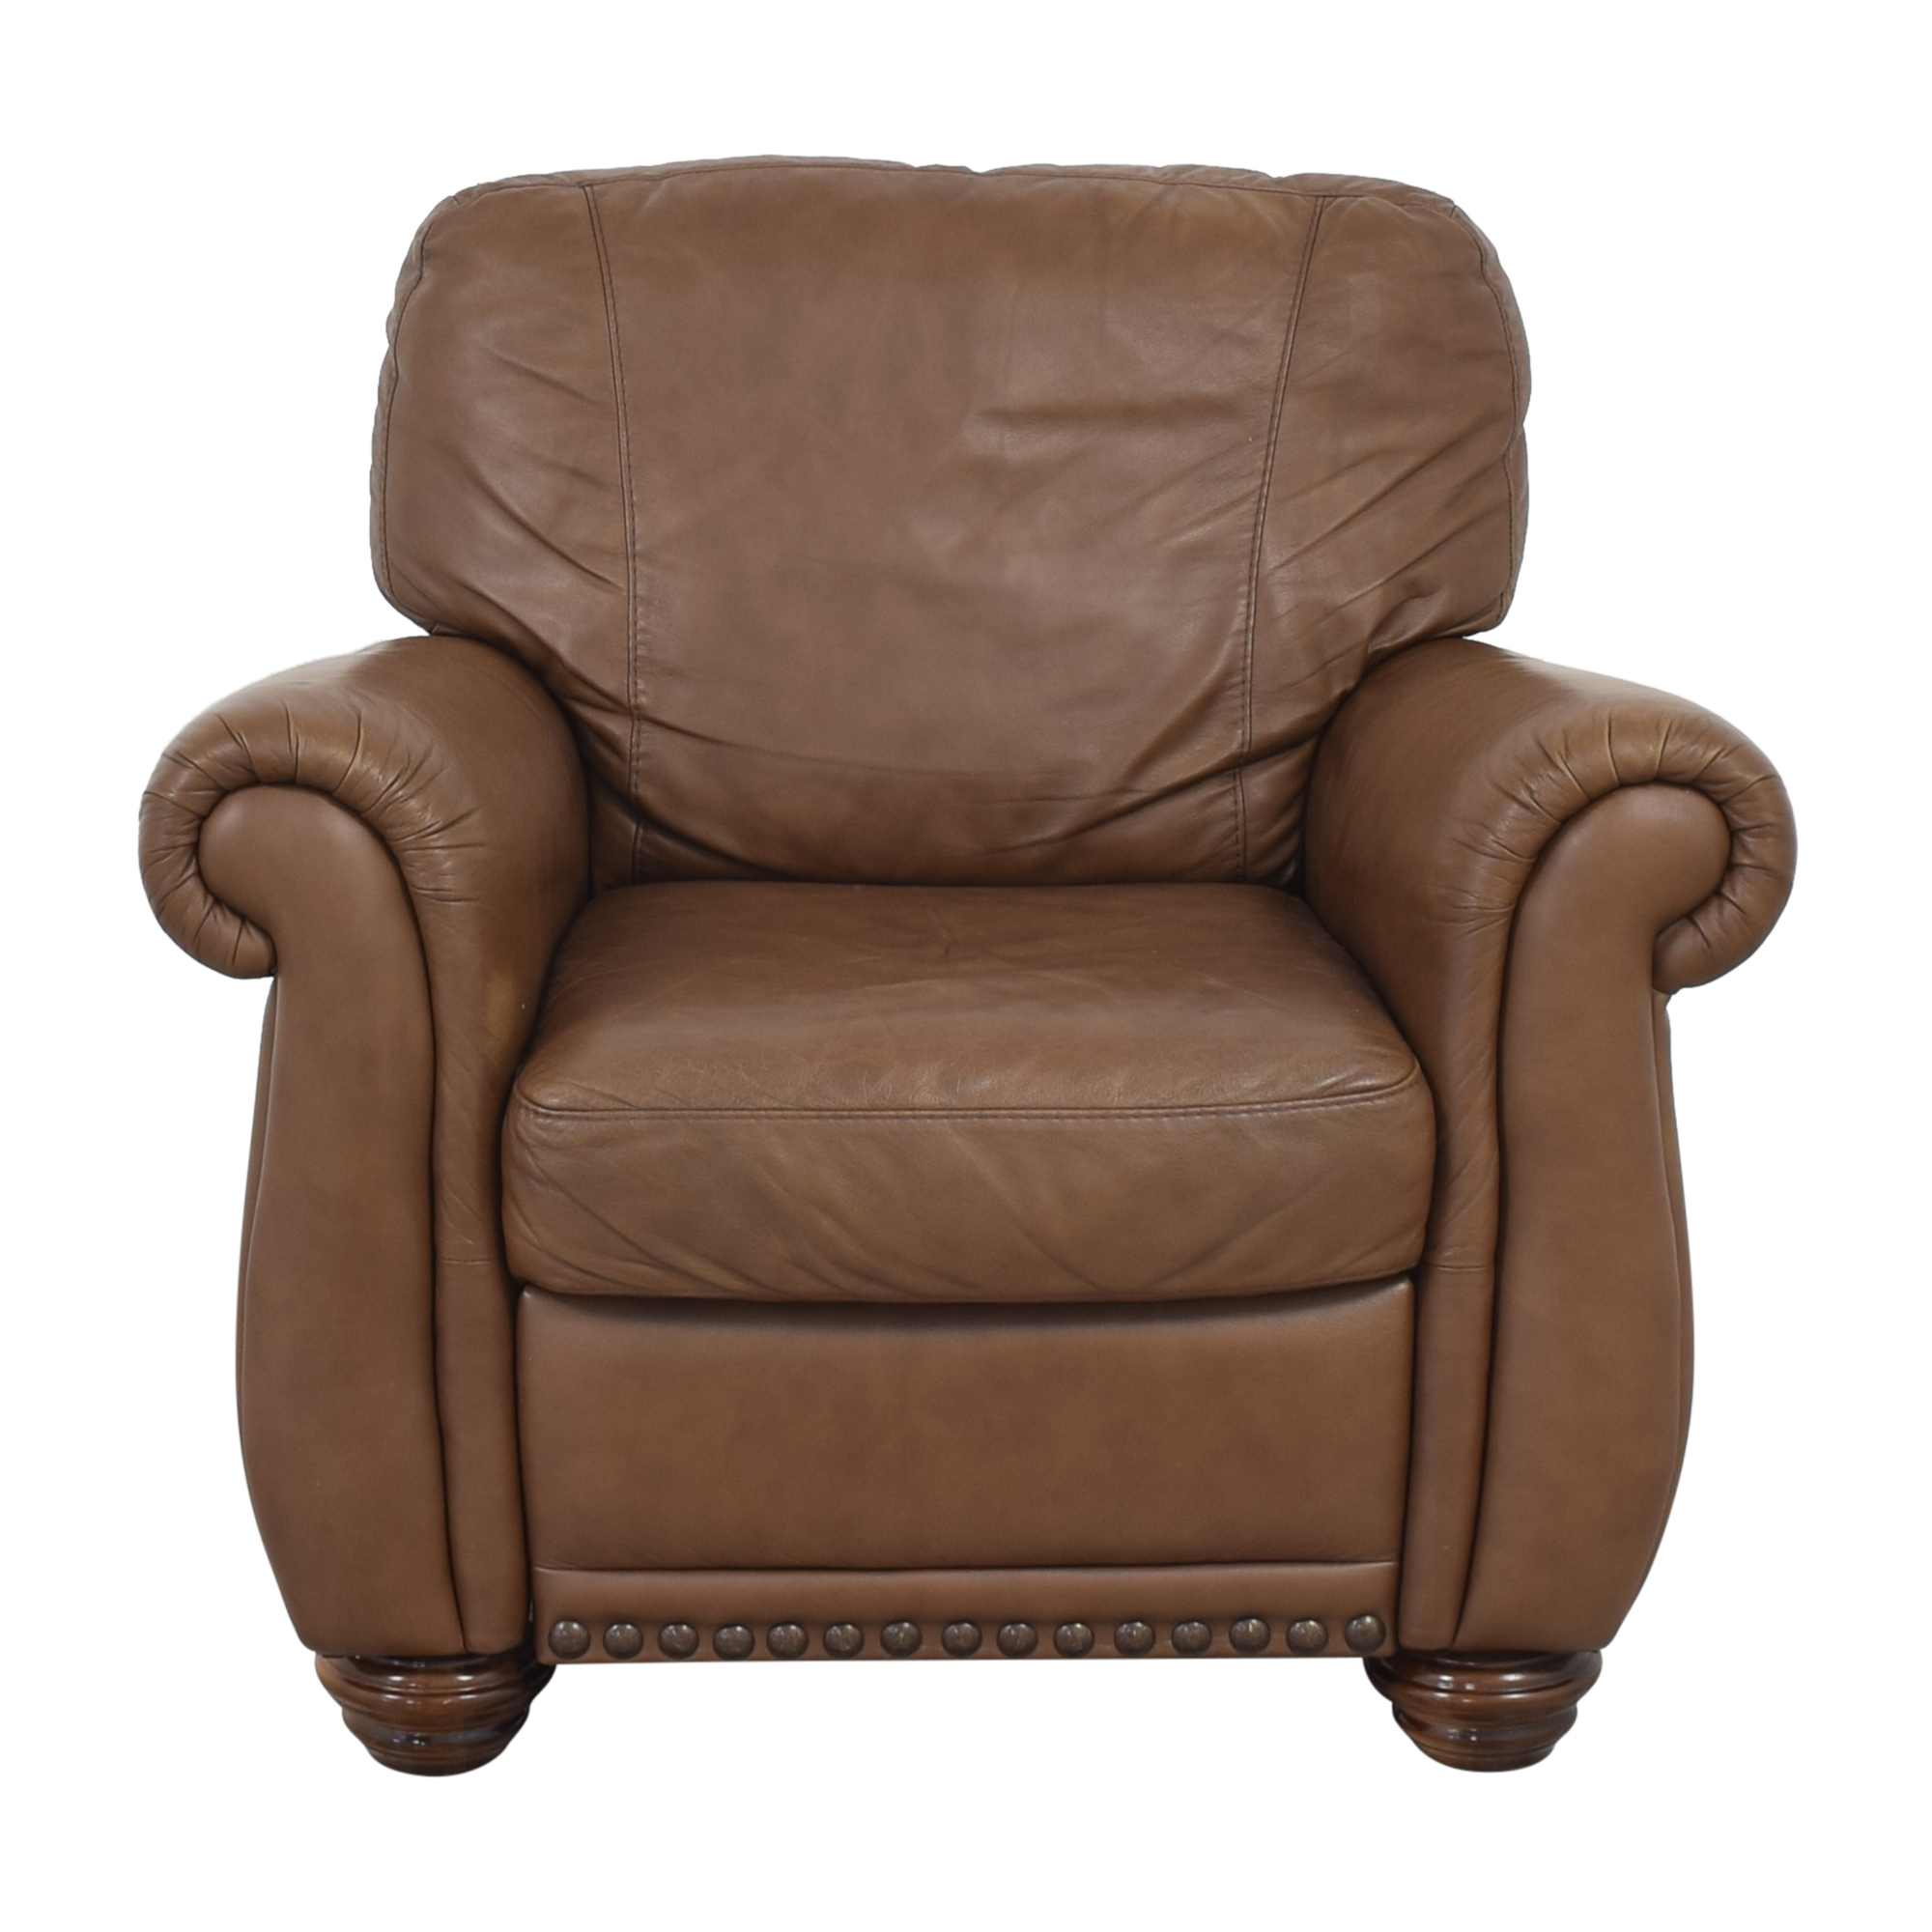 Raymour & Flanigan Raymour & Flanigan Natuzzi Elba Recliner brown